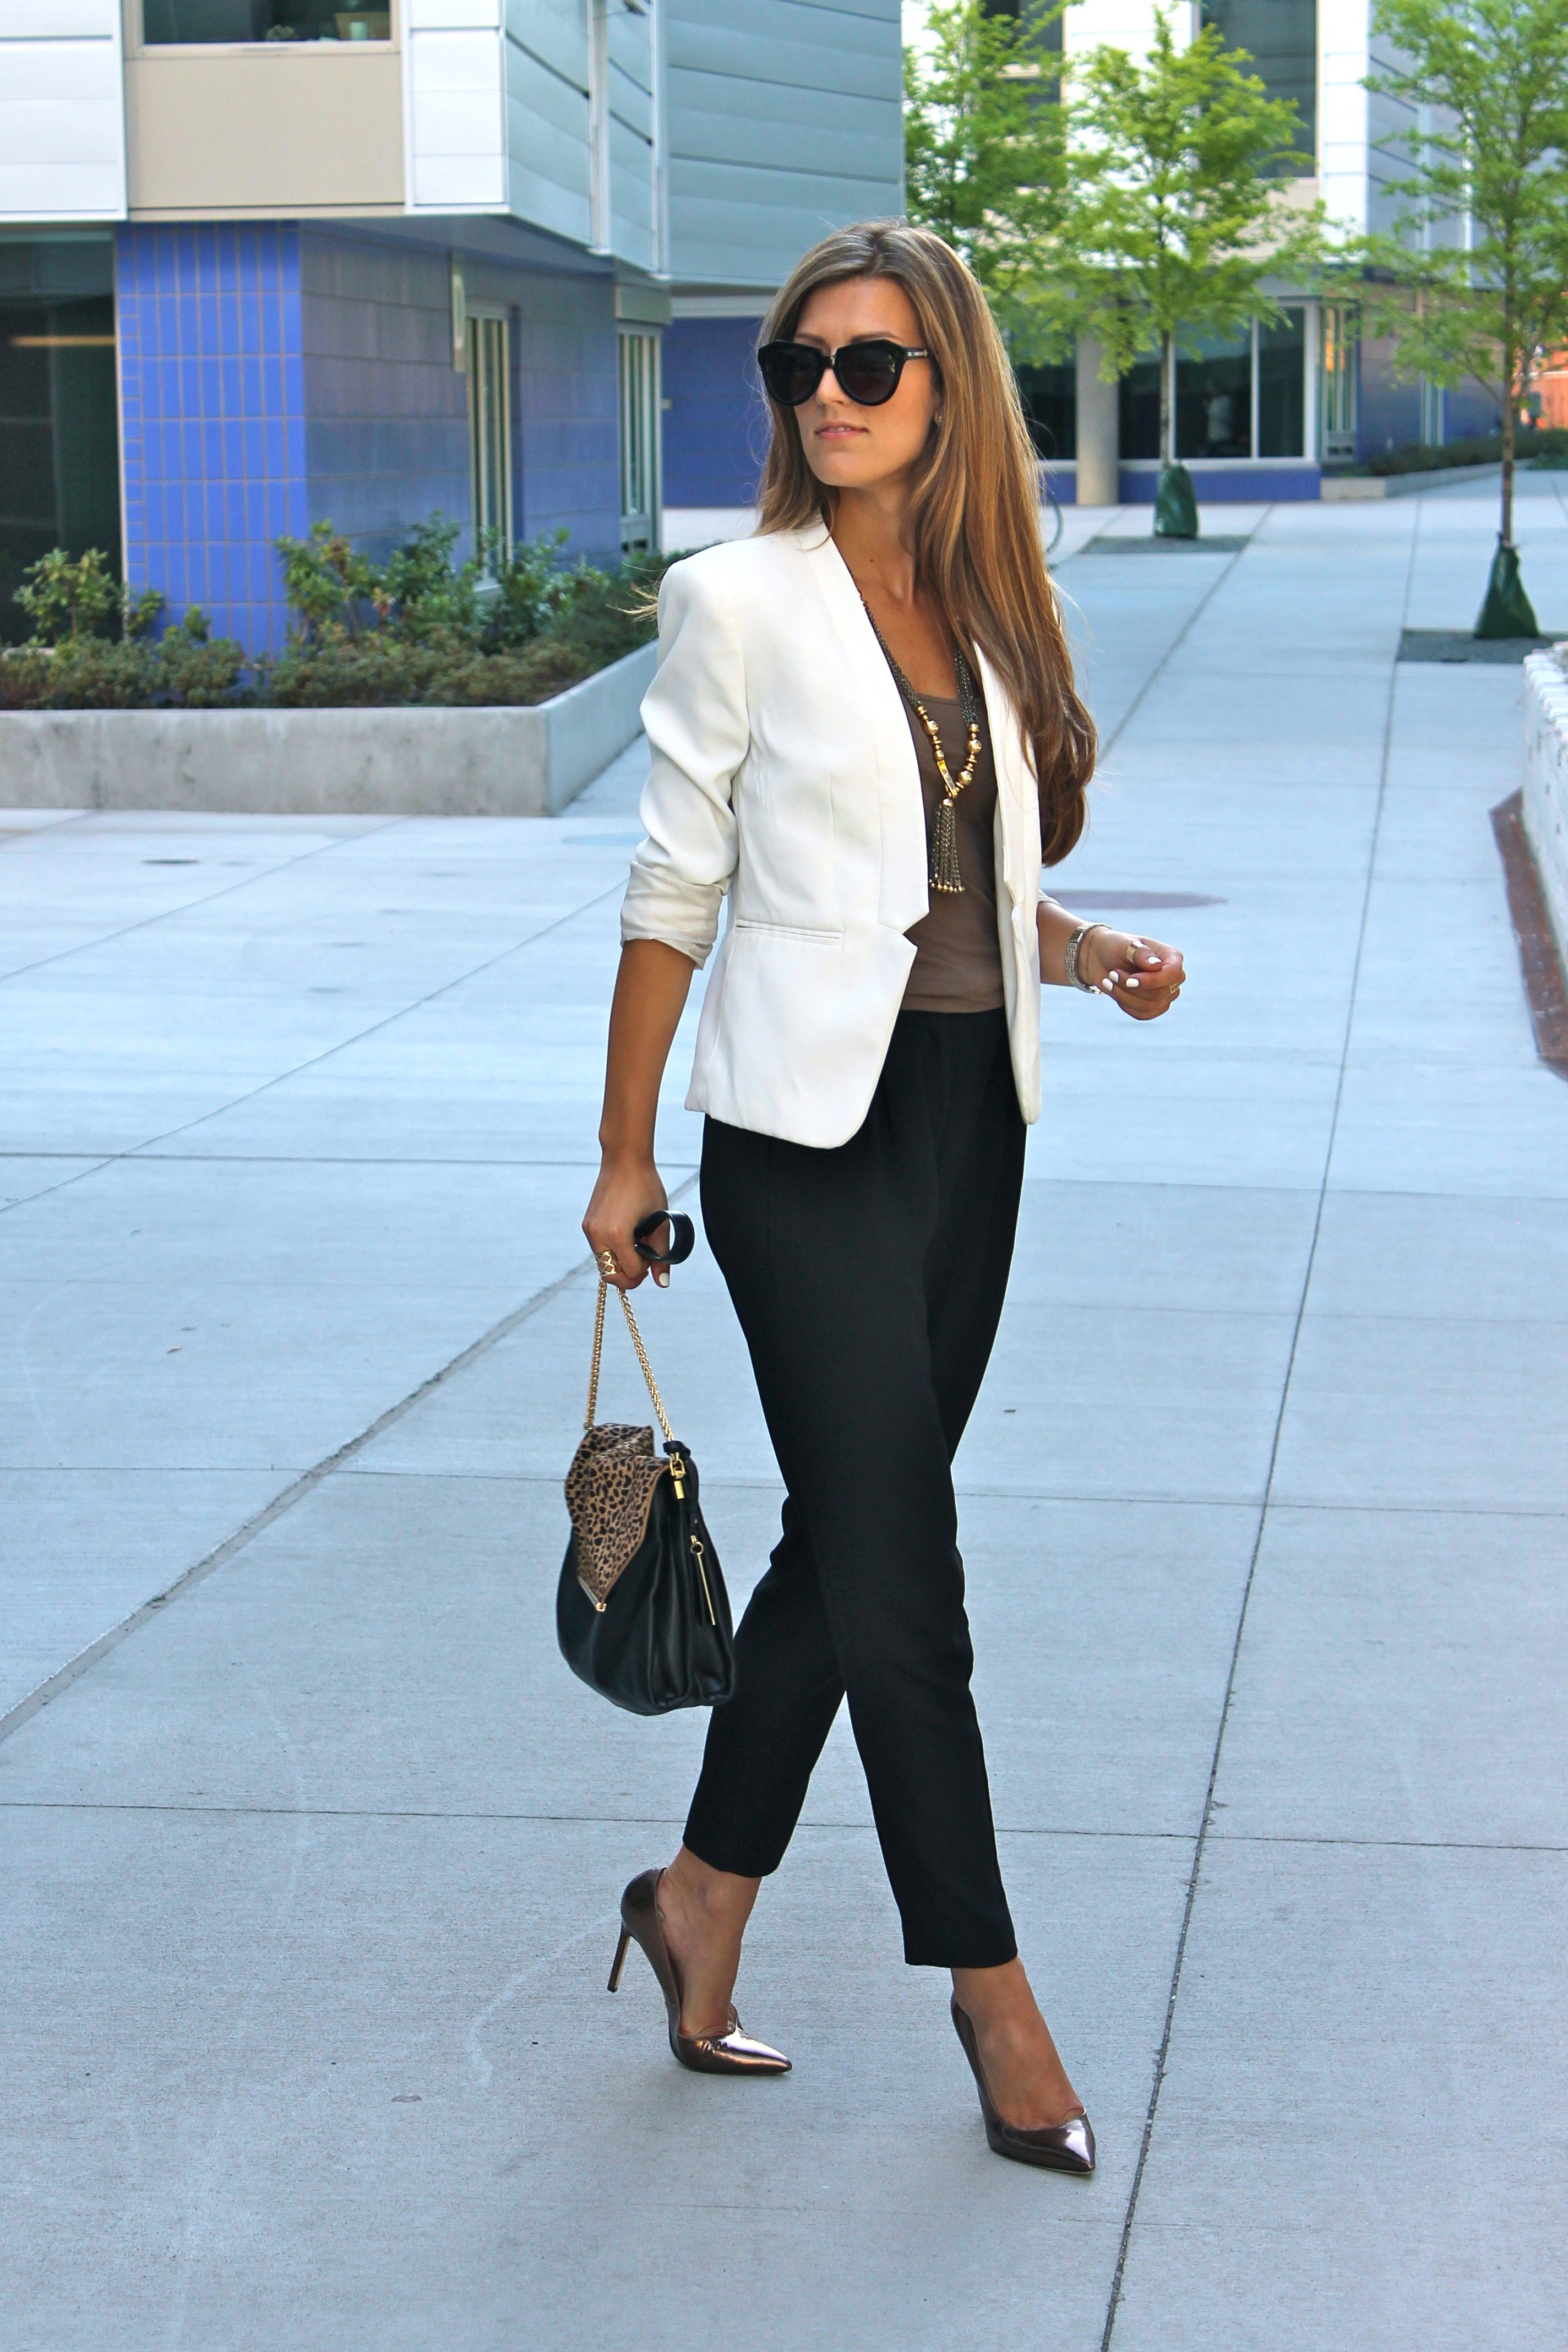 Office Outfit For Women   Interview Outfit Ideas   Pinterest   Work Outfits Business Casual And ...